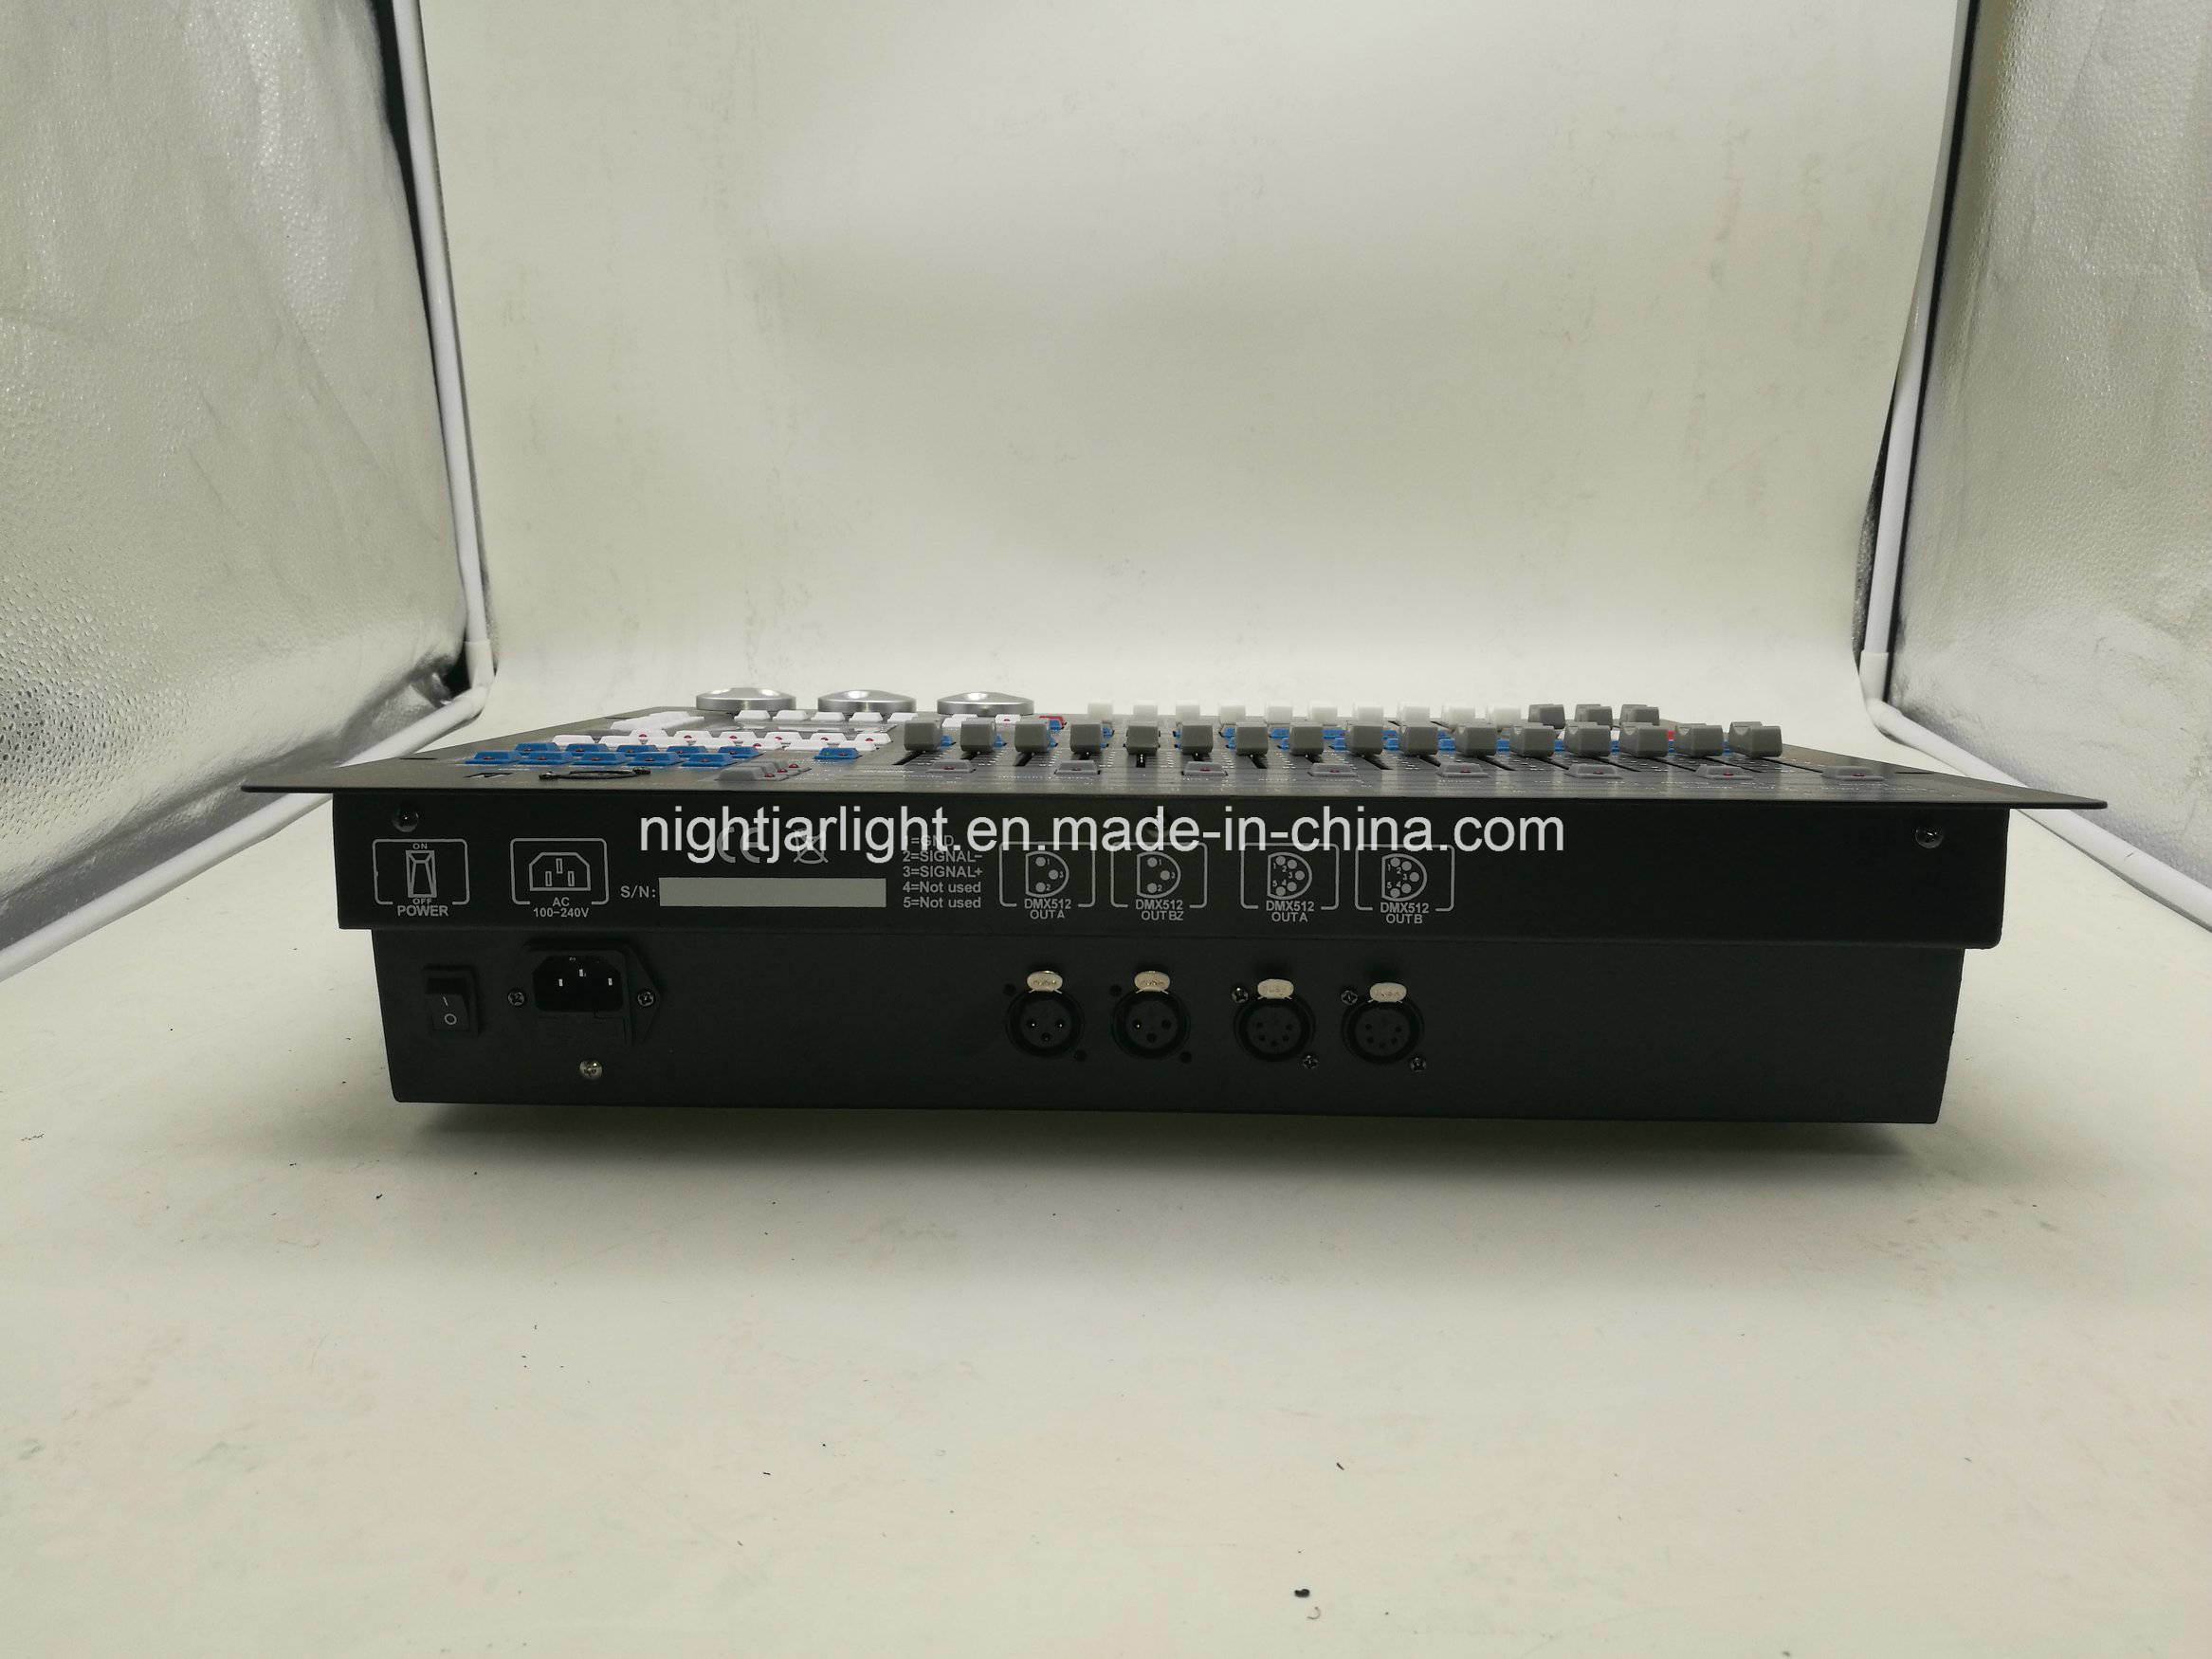 China Stage Controller King Kong 1024 Dmx Lighting Nj The Power Over Cat5 System Is Not To Be Confused With Kk1024